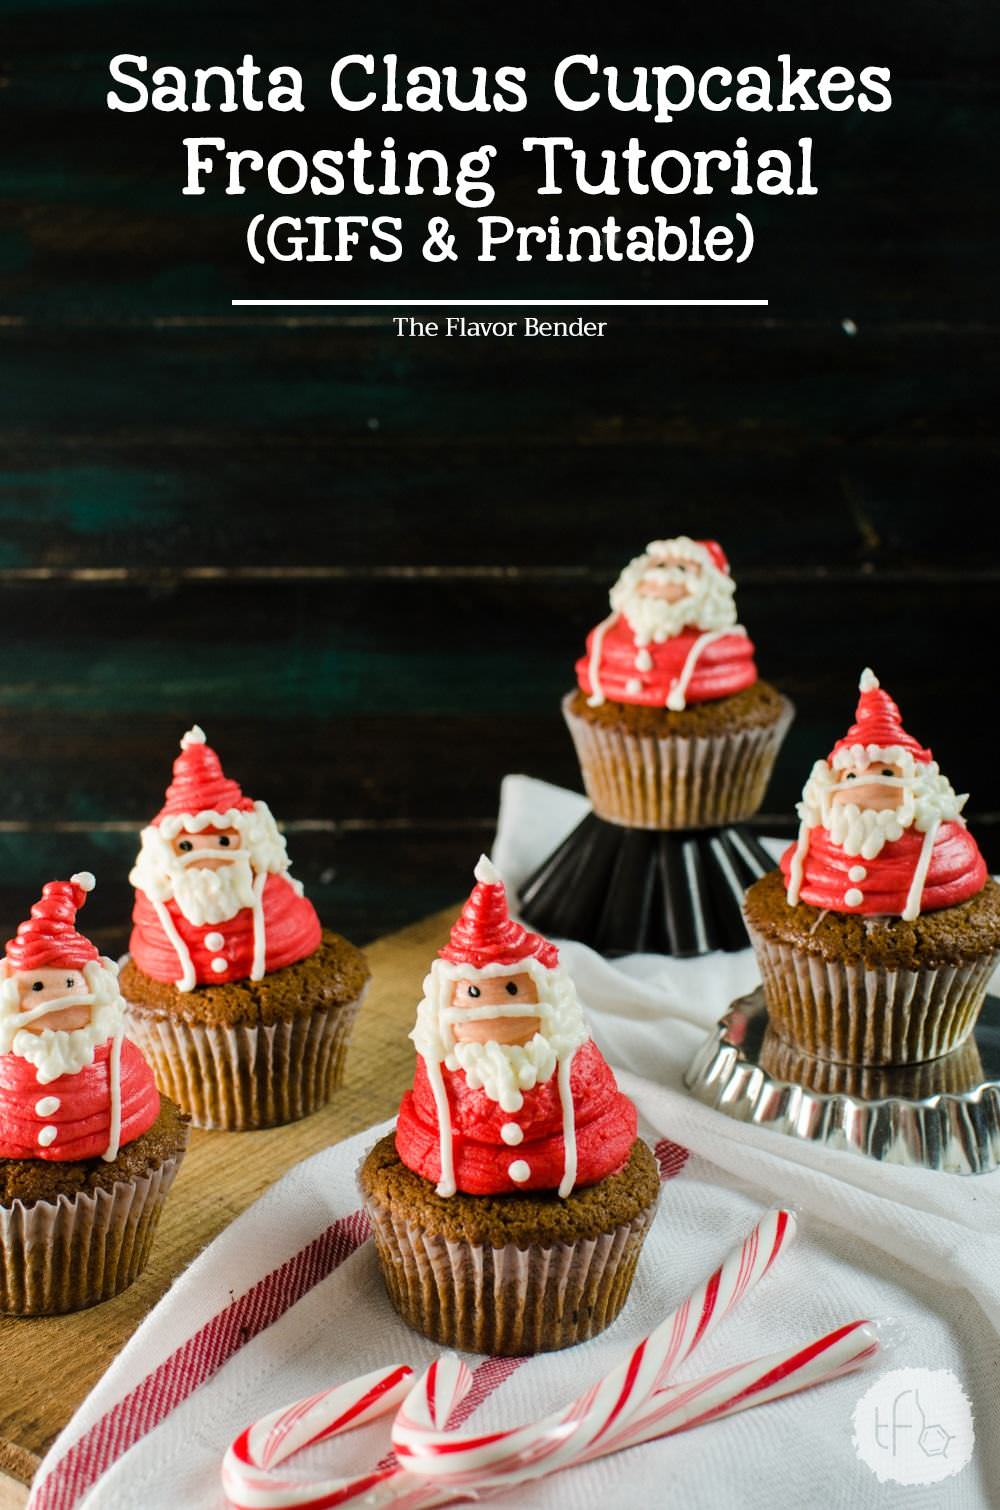 Décoration De Cupcake Santa Claus Cupcakes Santa Claus Frosting Decorating Tutorial